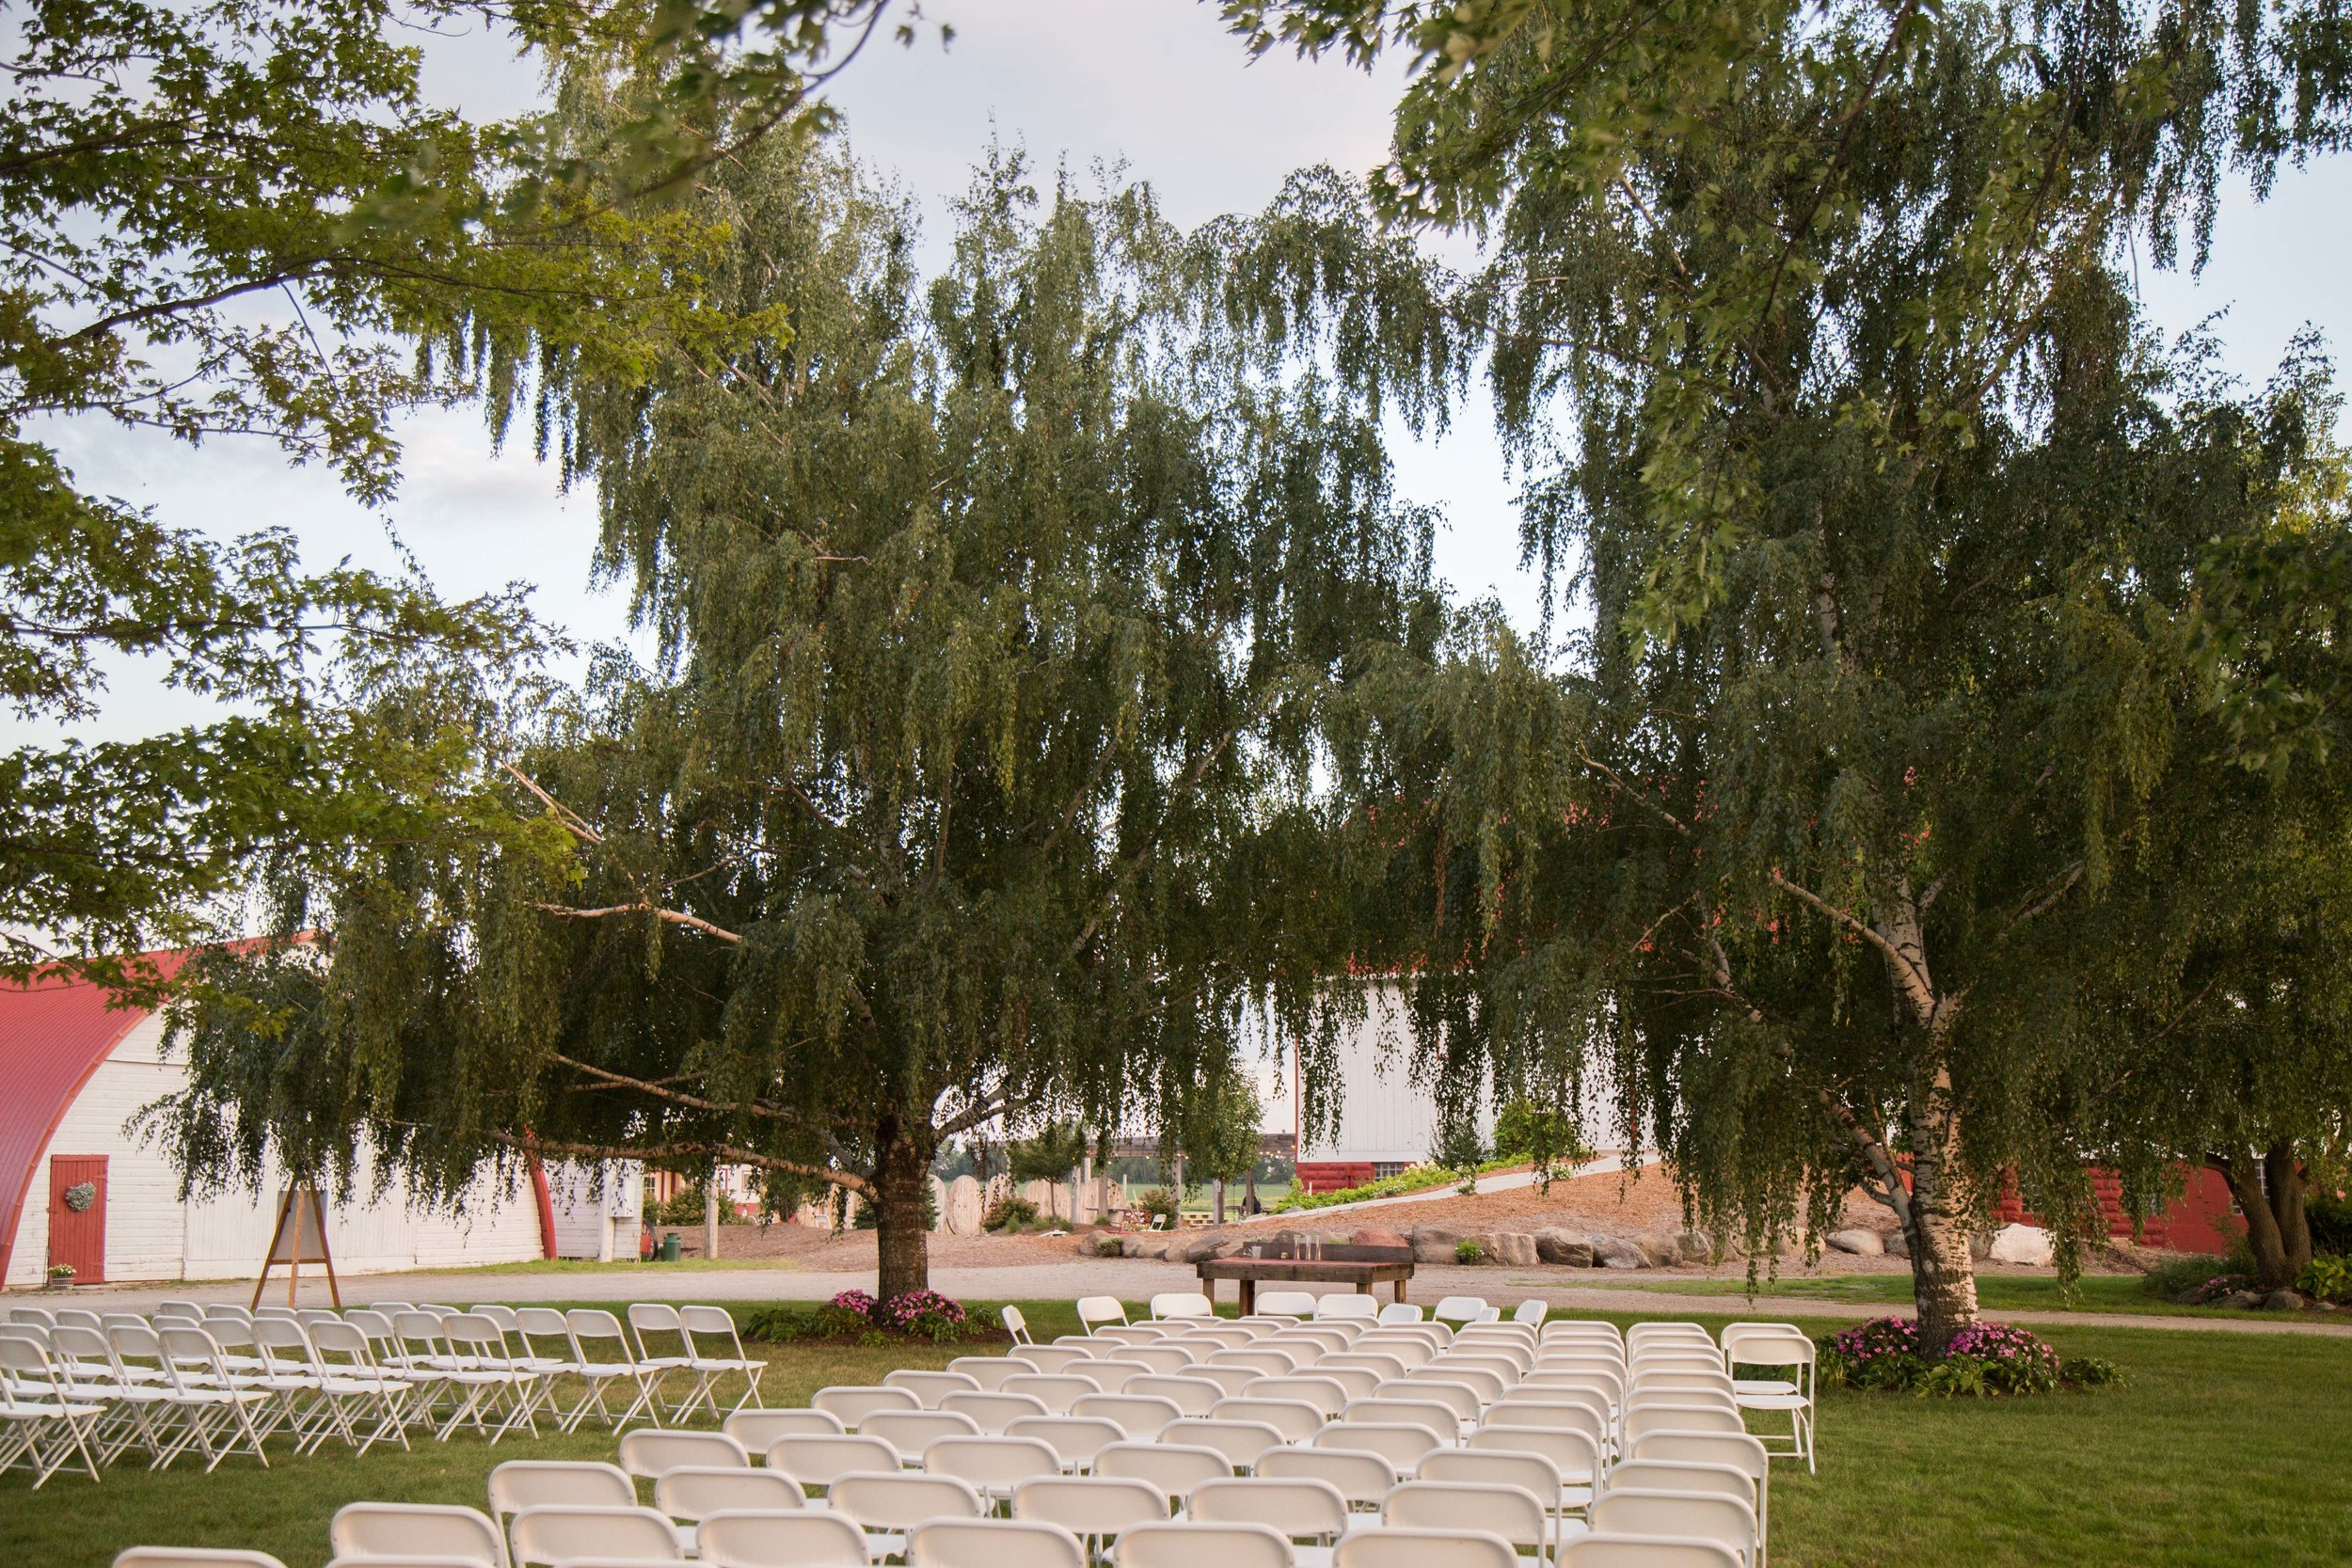 8_21-Birches_ceremony_white_chairs_5879 2.jpg